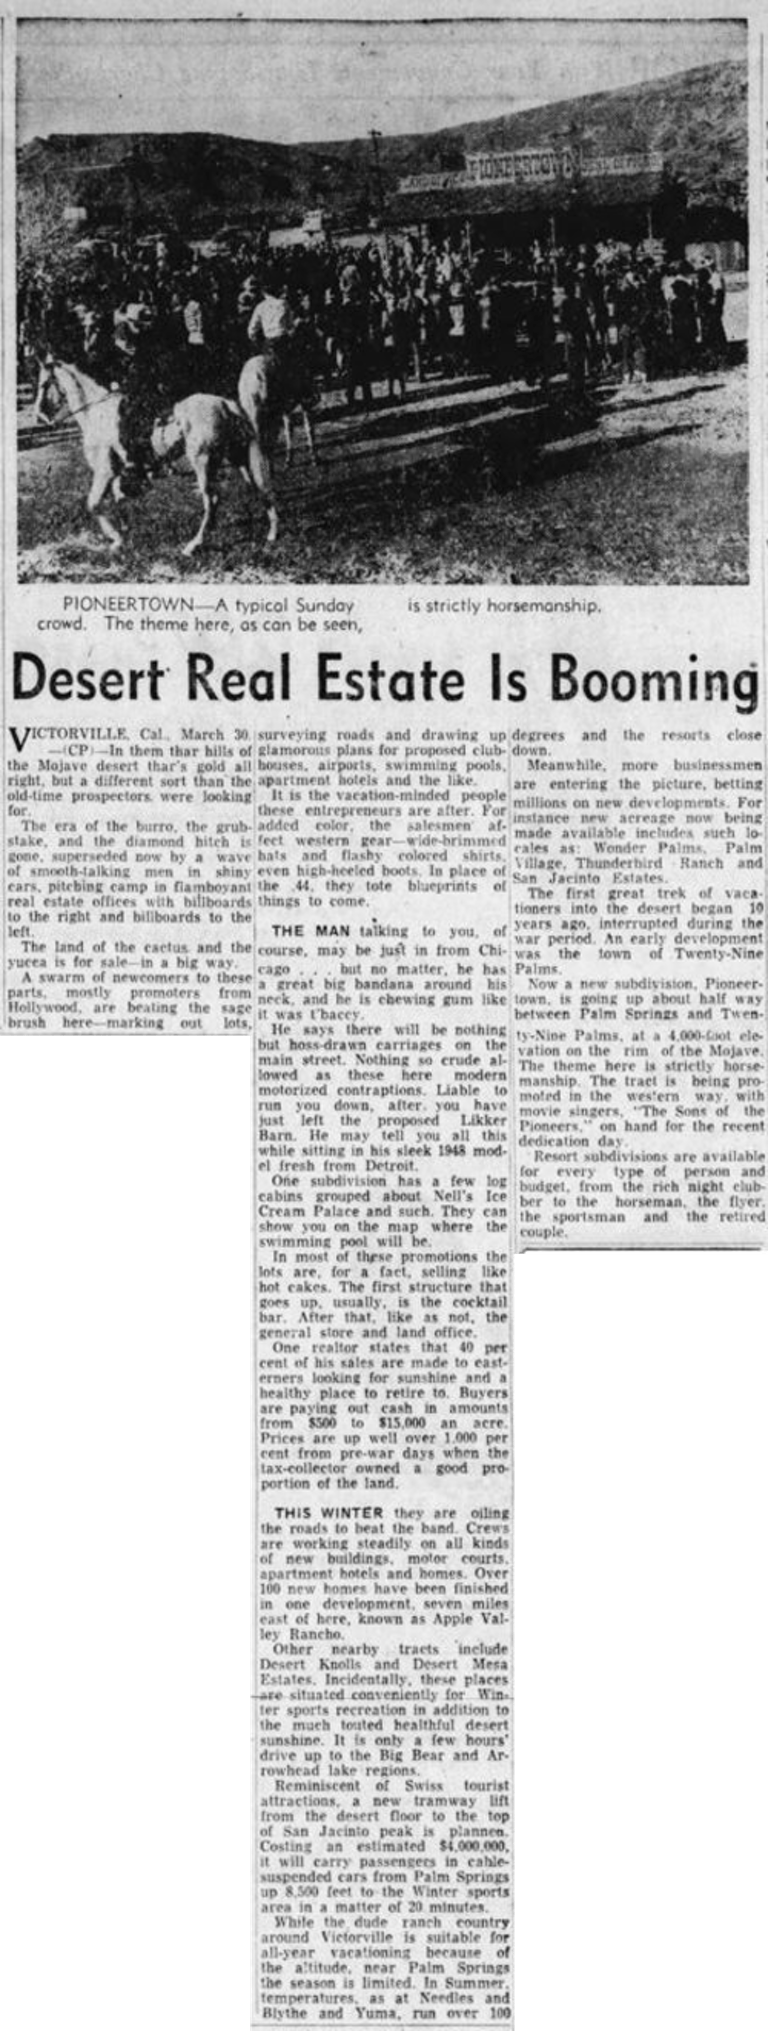 March 30, 1948 - Lancaster New Era clipping